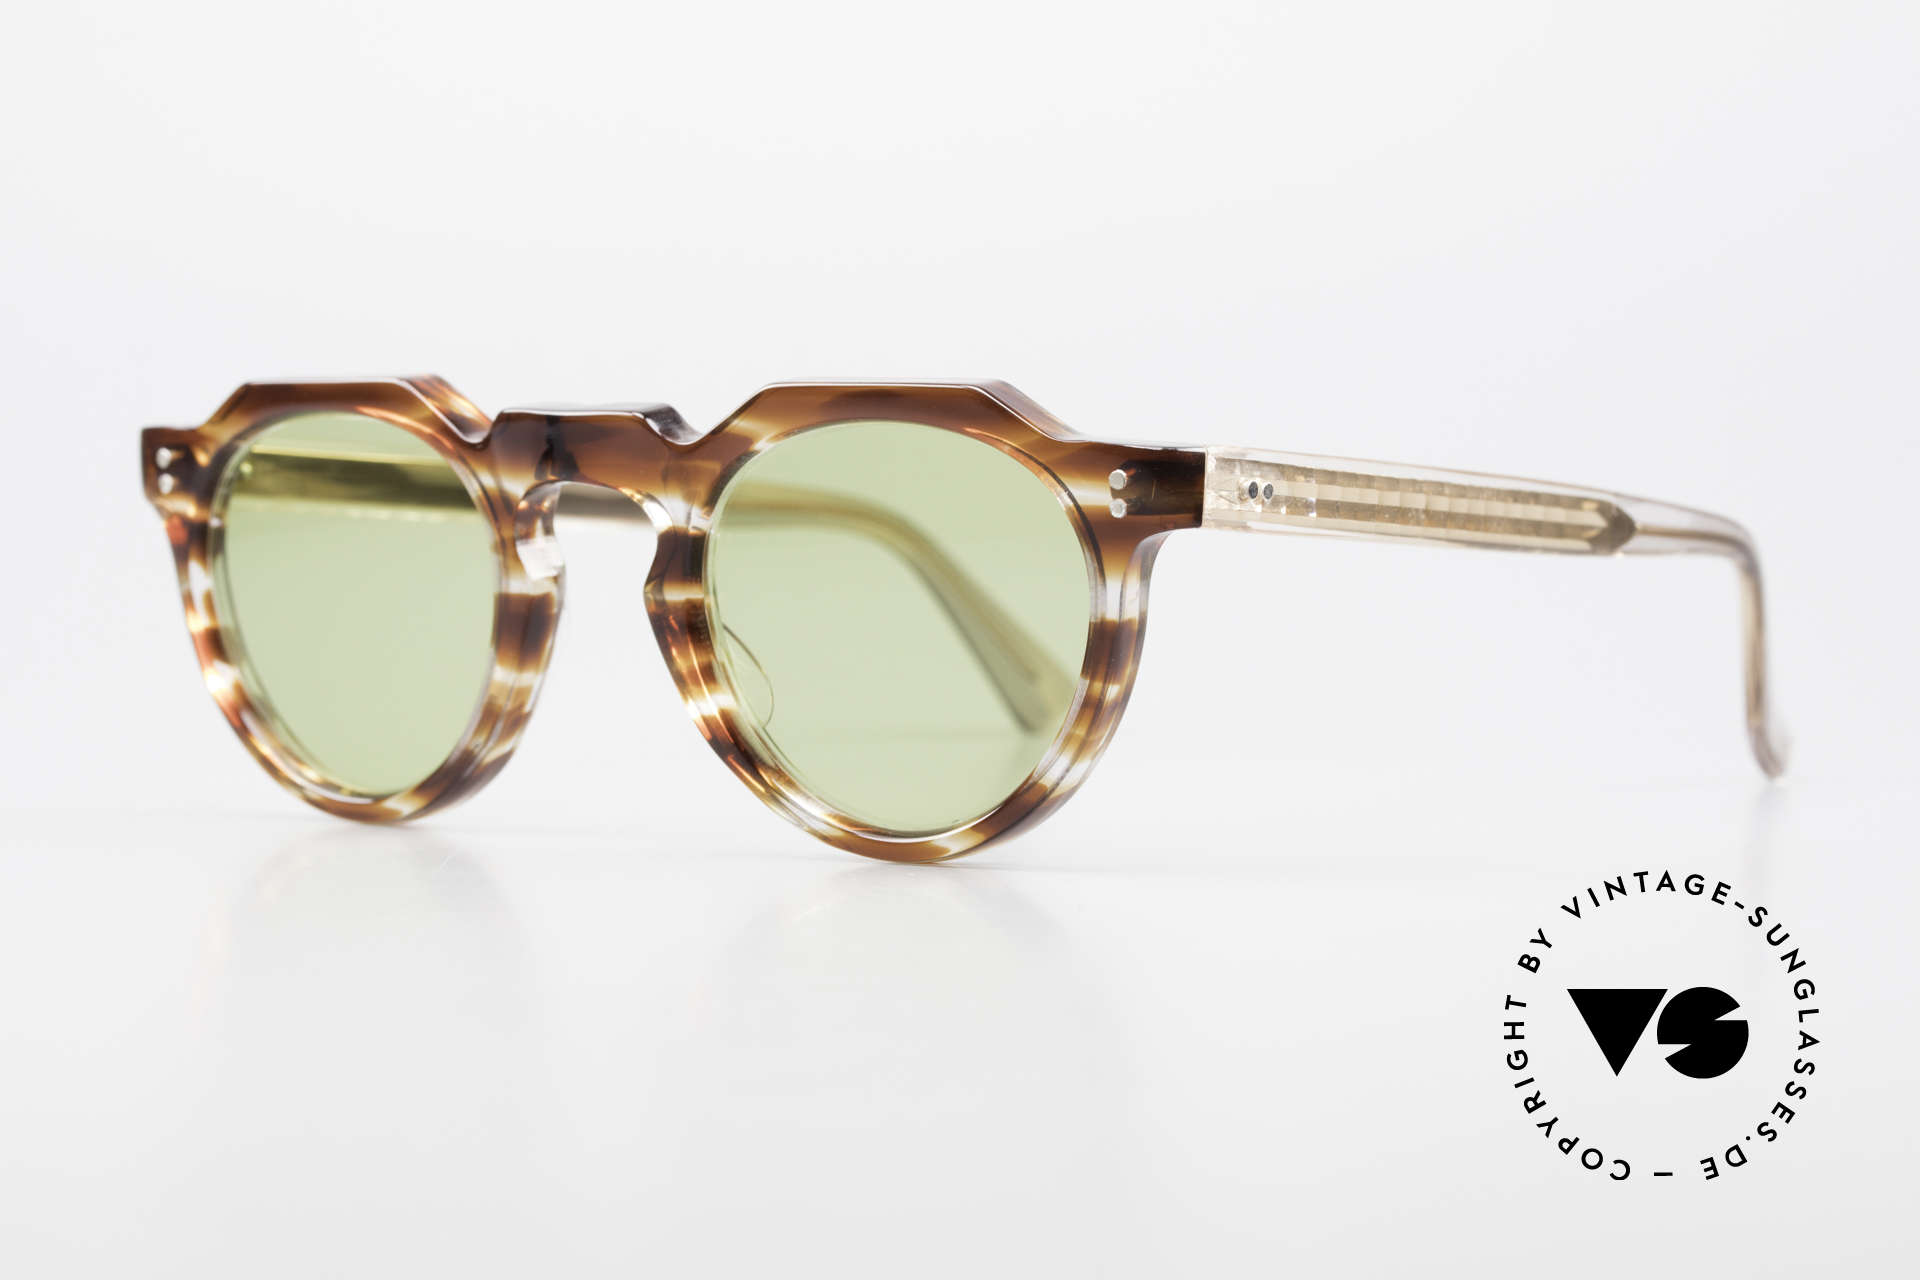 Lesca Panto 6mm Antique 1960's Sunglasses, made in France; WITHOUT any MARKS or inscriptions, Made for Men and Women